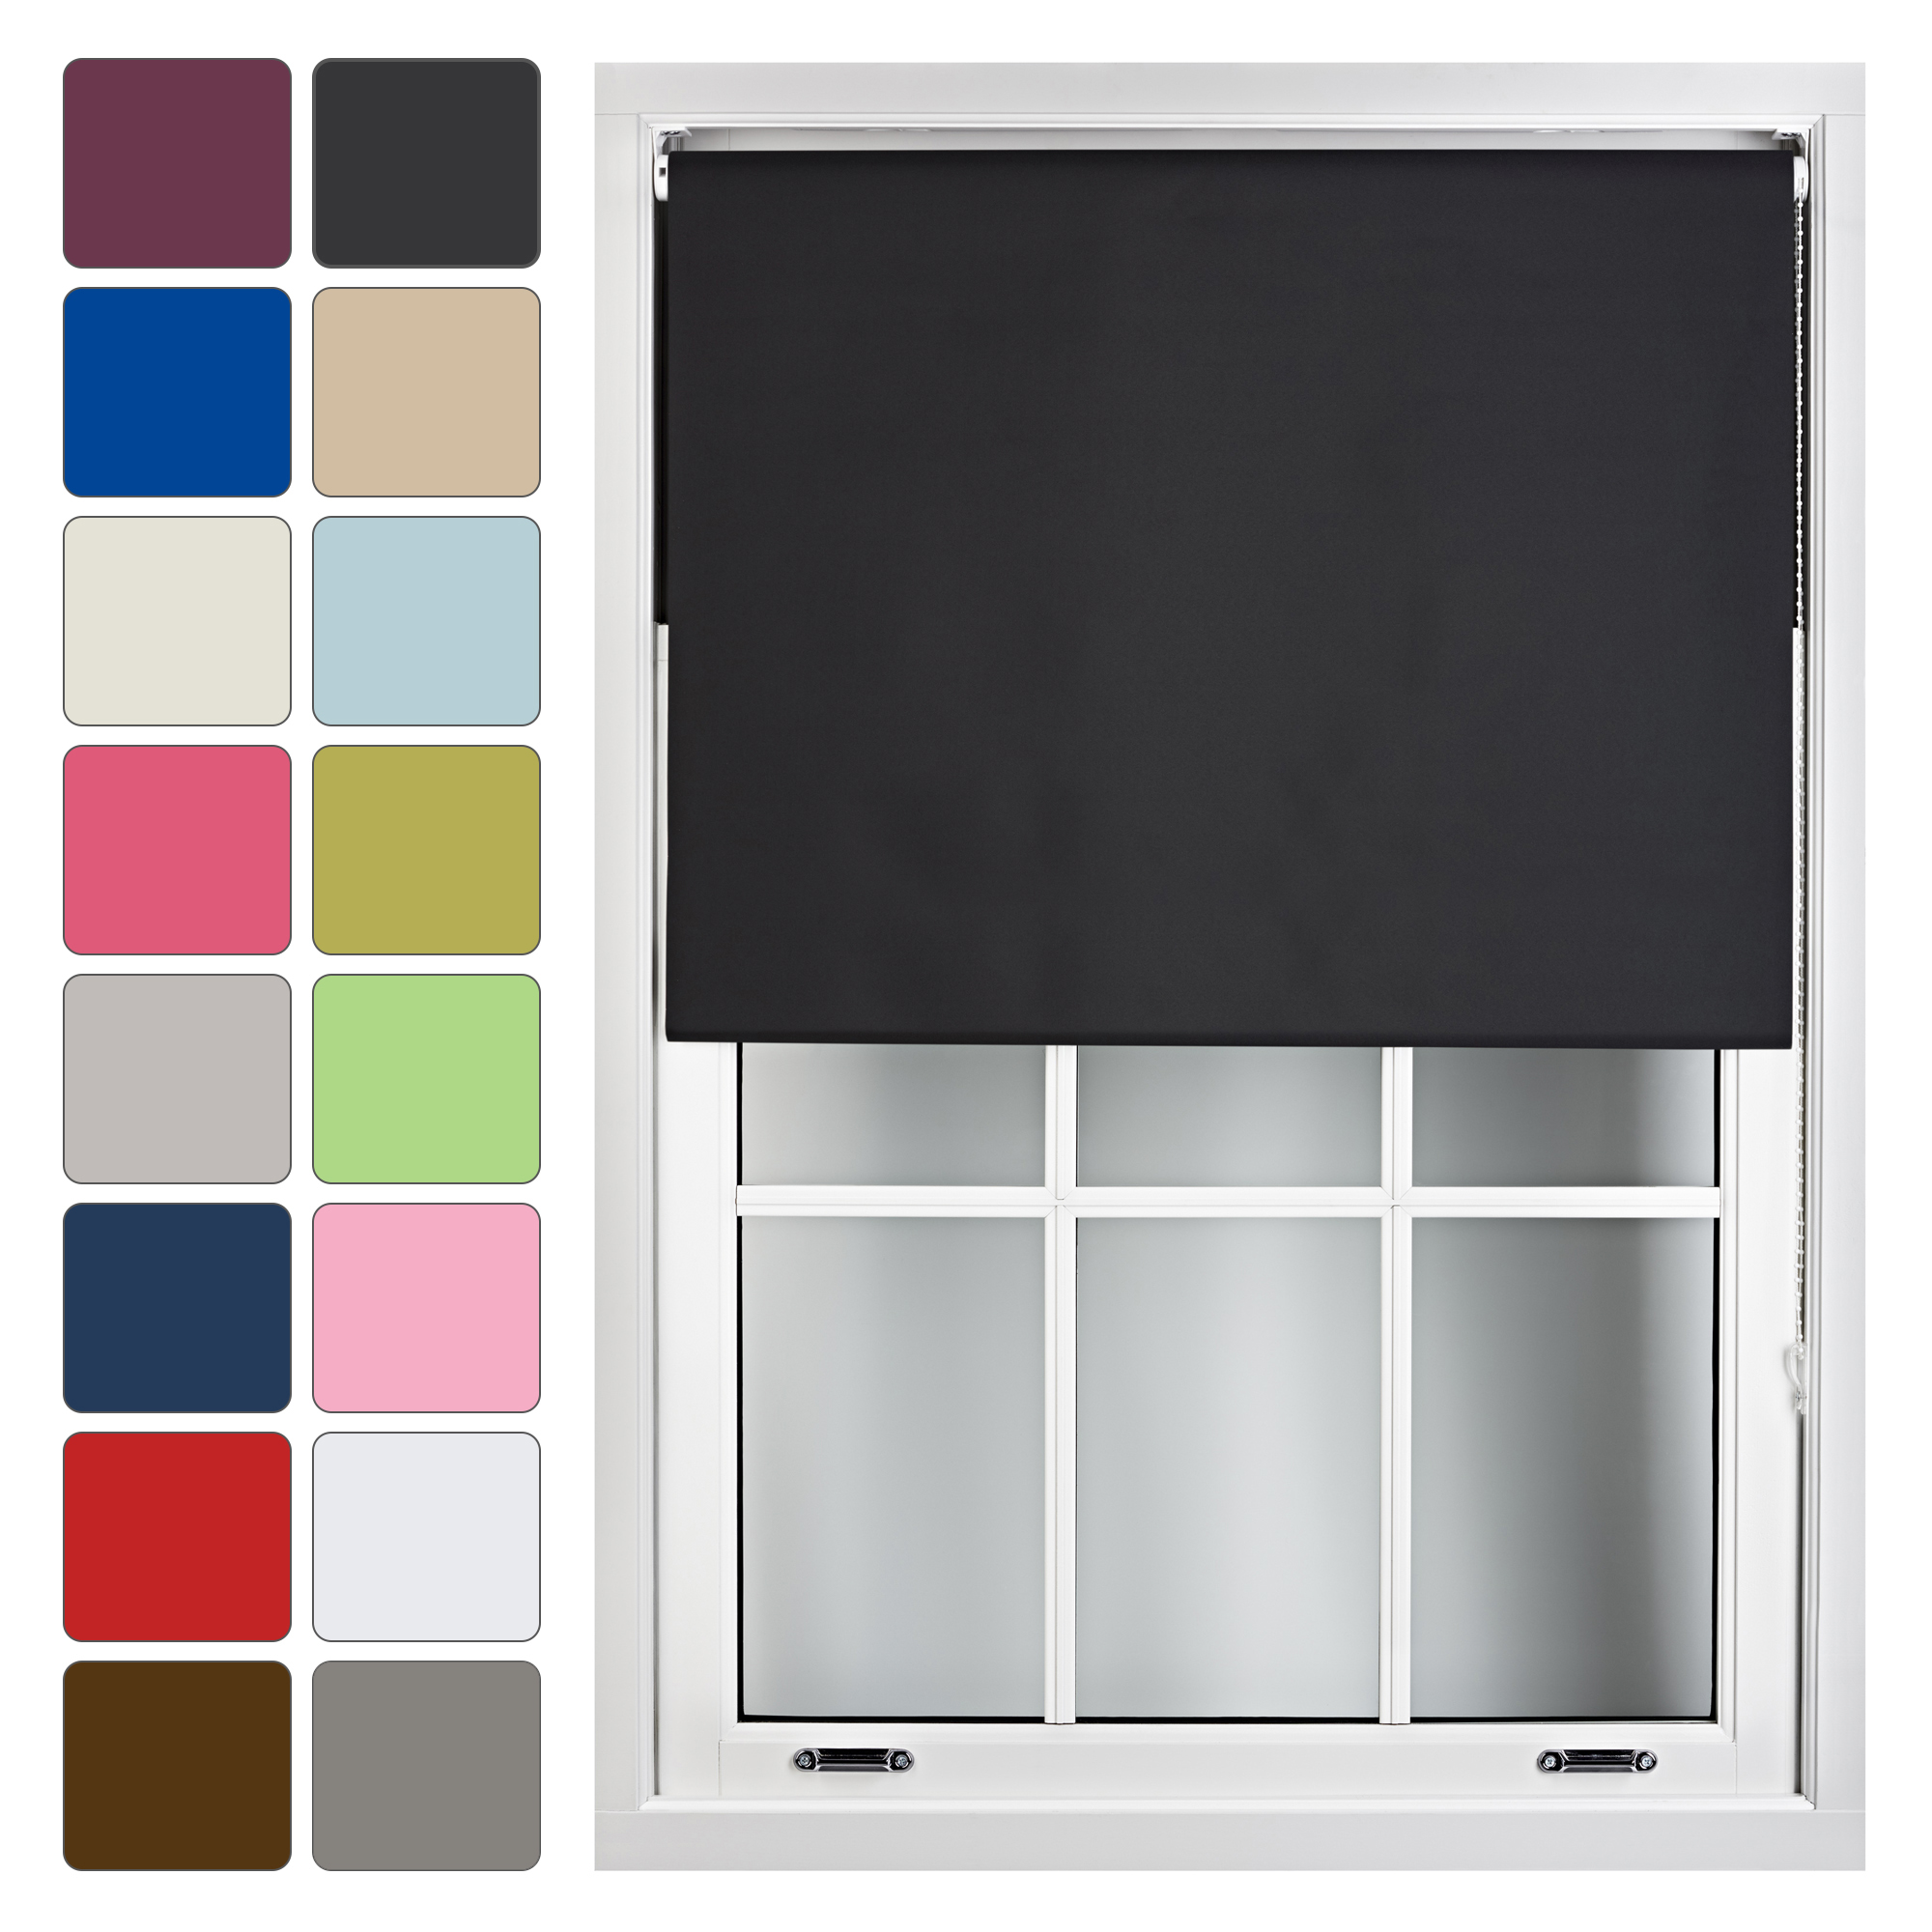 blackout window roller blinds made to measure up to 240cm. Black Bedroom Furniture Sets. Home Design Ideas